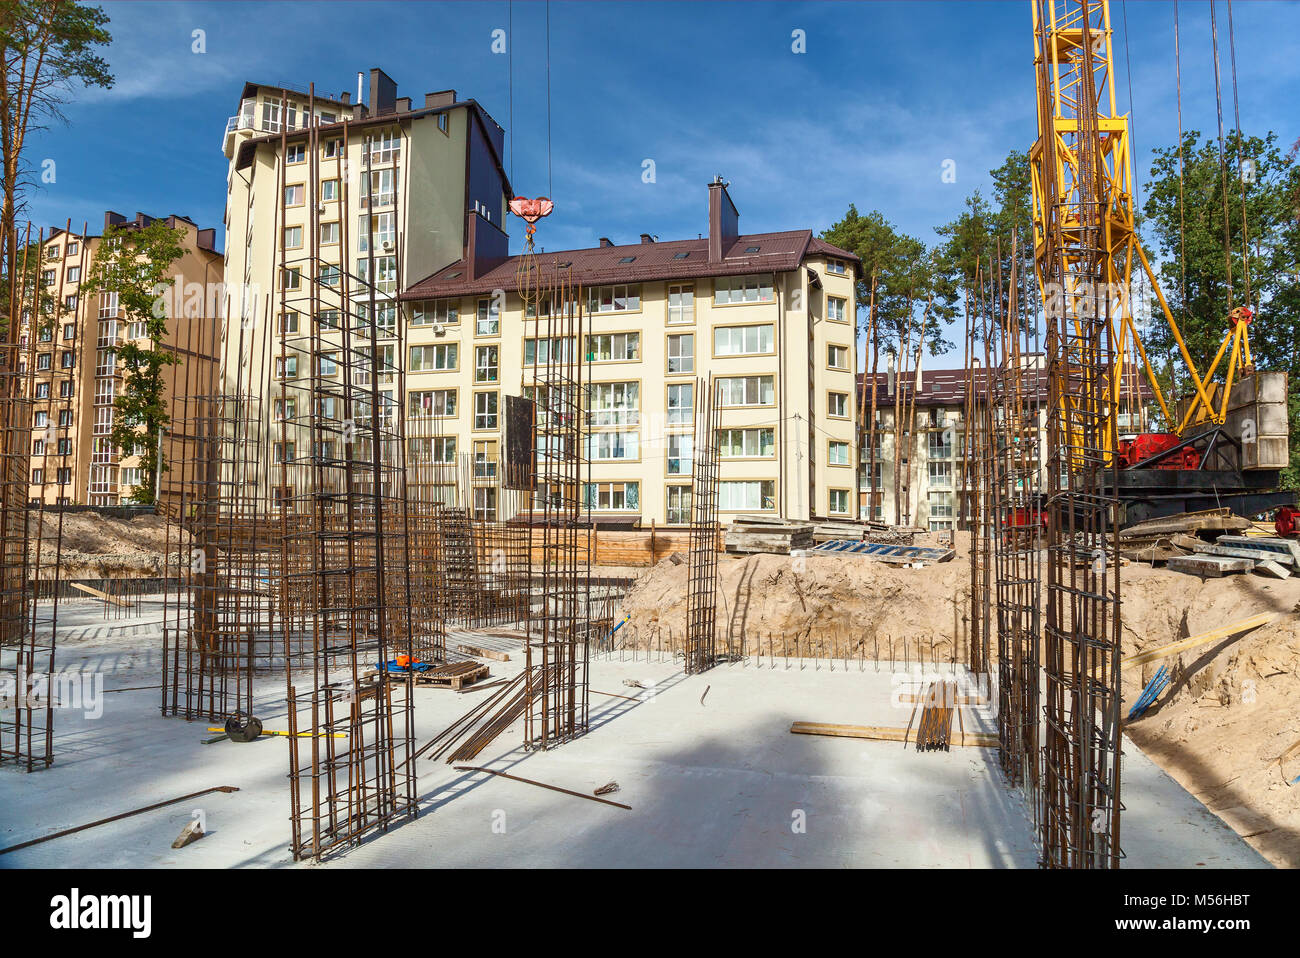 Design of reinforcement cage of reinforcement for concrete frame house, brick house, formwork for concrete pouring, Stock Photo